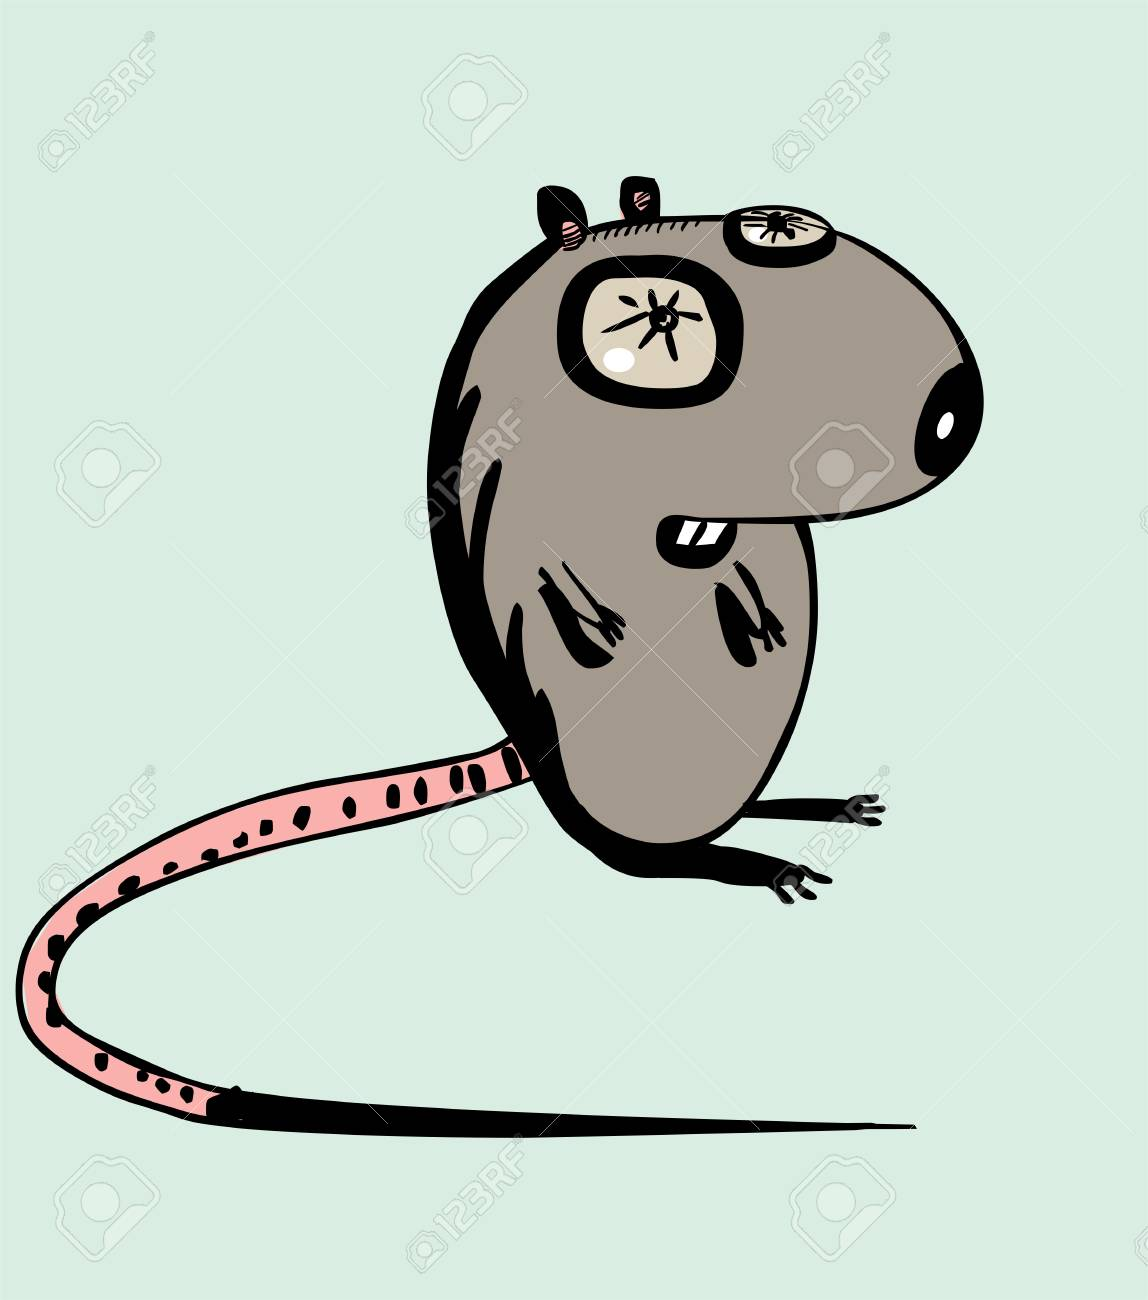 funny mouse royalty free cliparts vectors and stock illustration